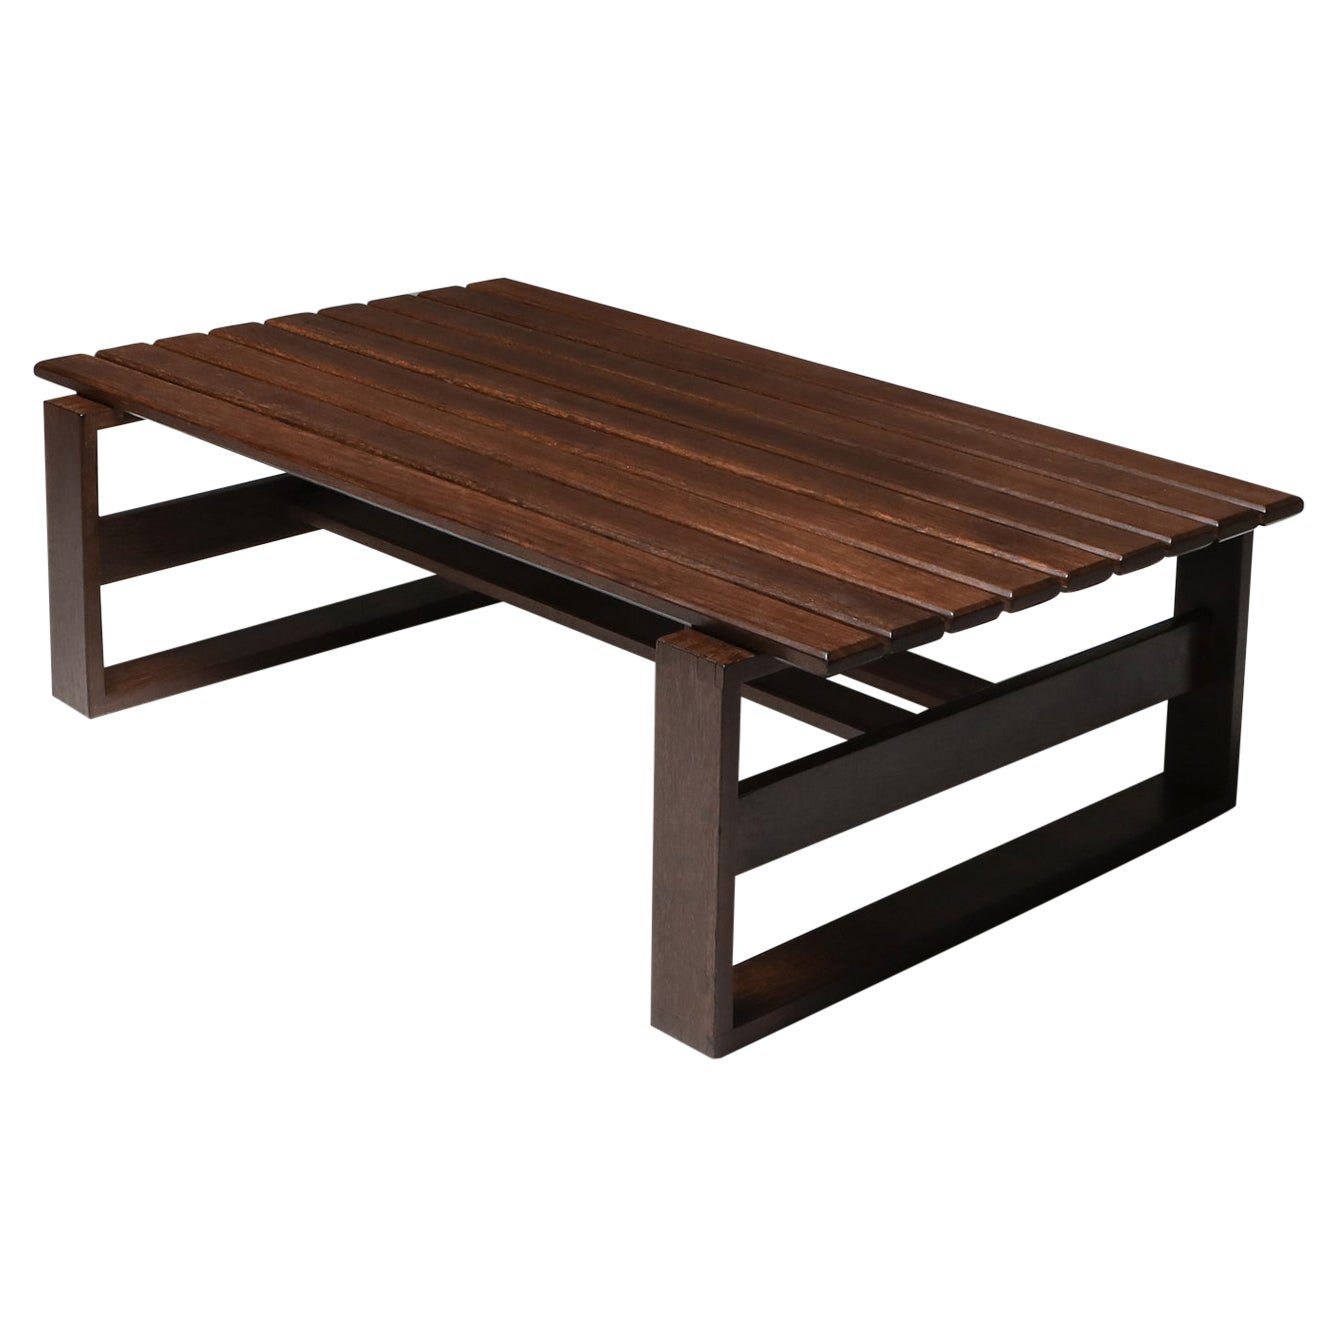 Wengé Slatted Bench or Coffee Table